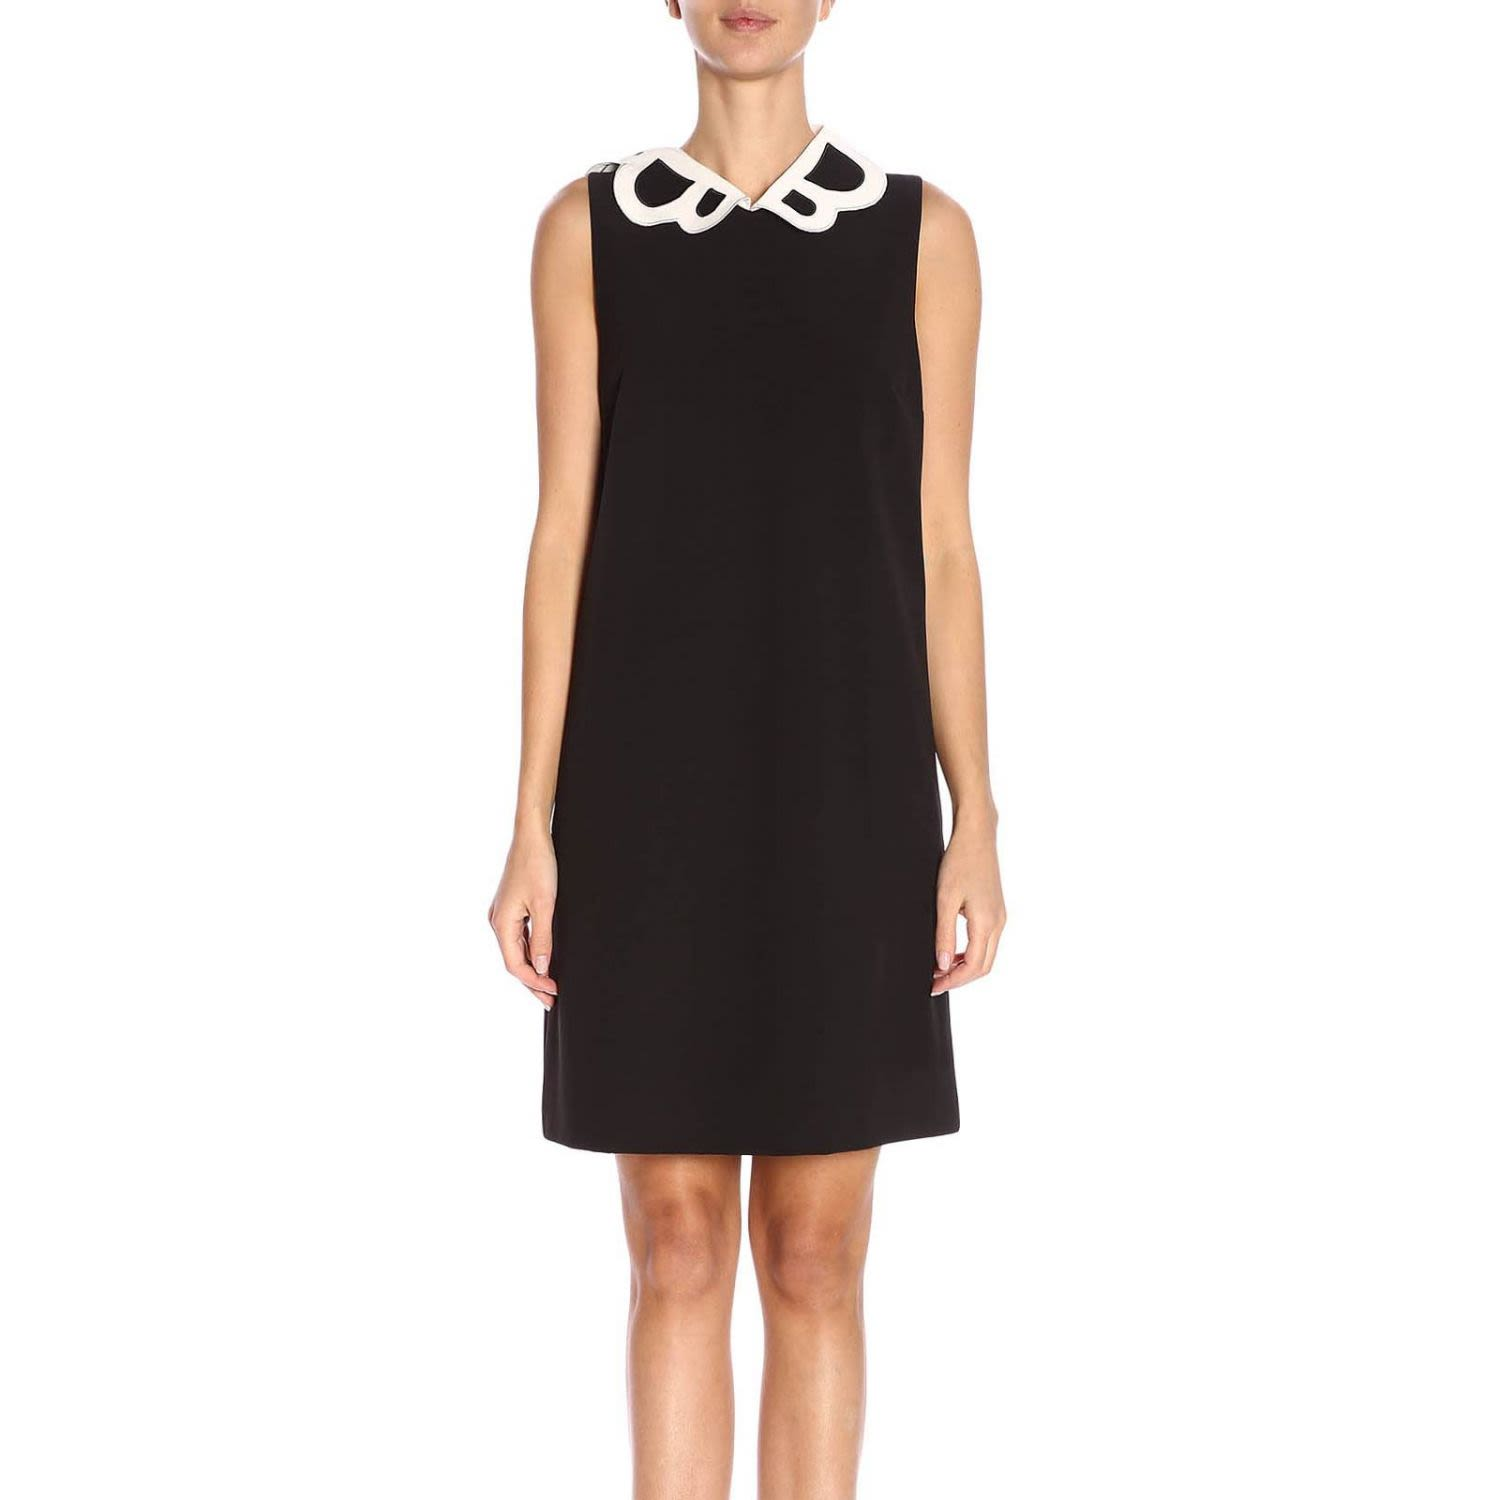 Boutique Moschino Dress Dress Women Boutique Moschino